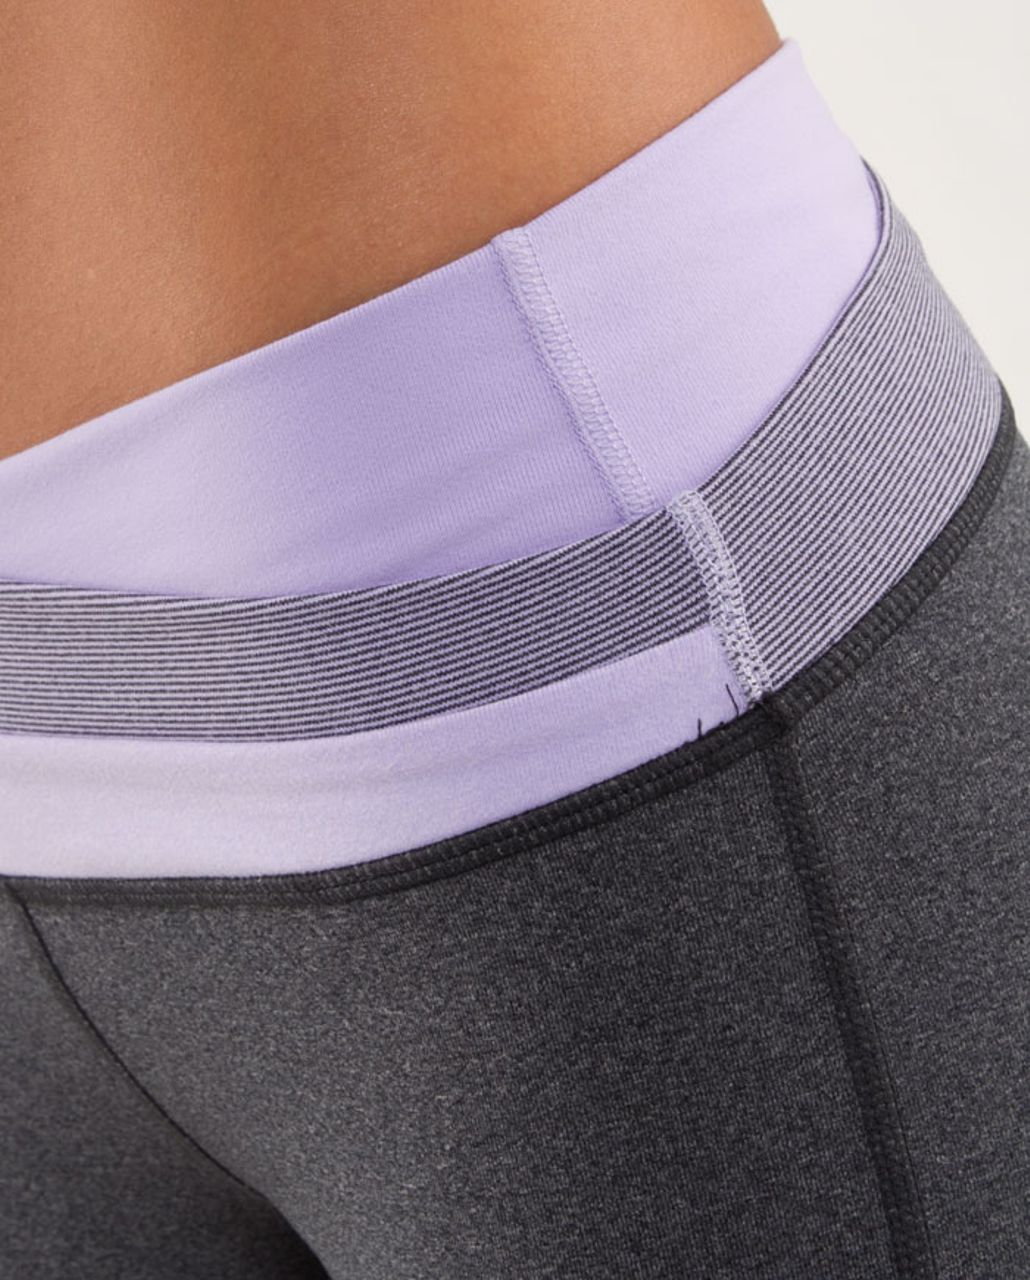 Lululemon Astro Pant (Tall) - Heathered Coal /  Lilac /  Lilac Heathered Coal Wee Stripe